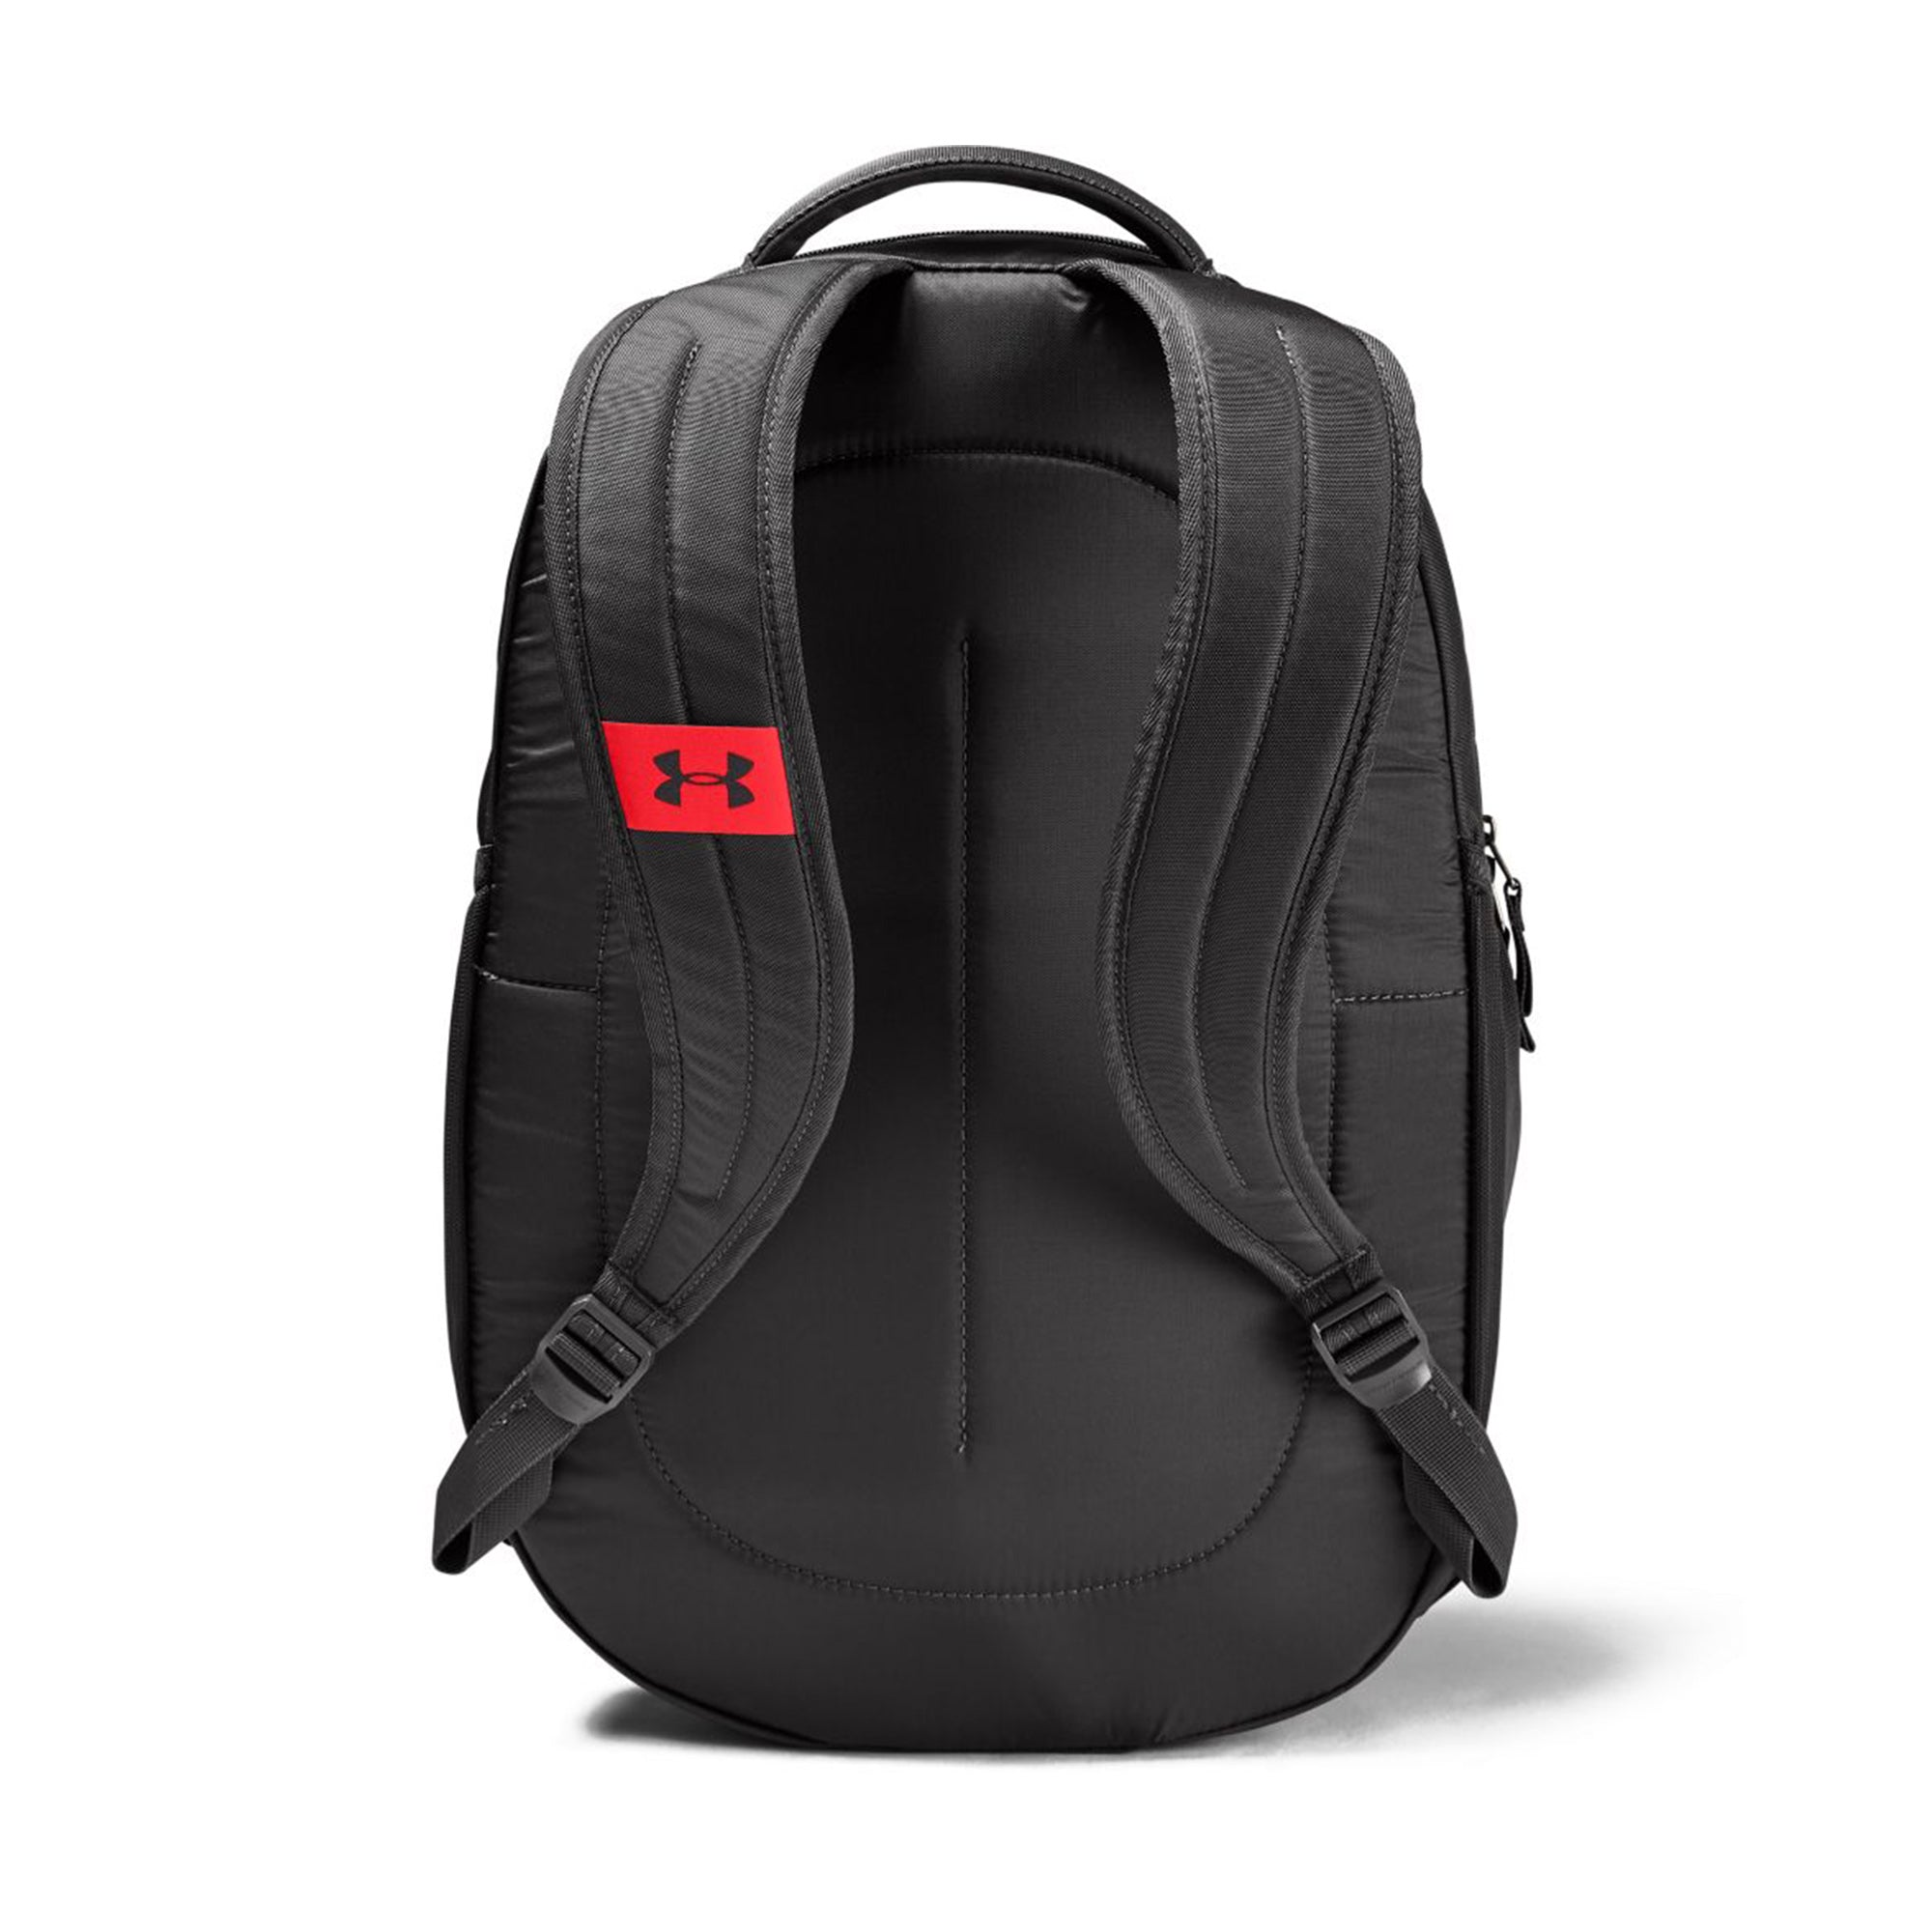 Under Armour Hustle 4.0 Backpack 1342651